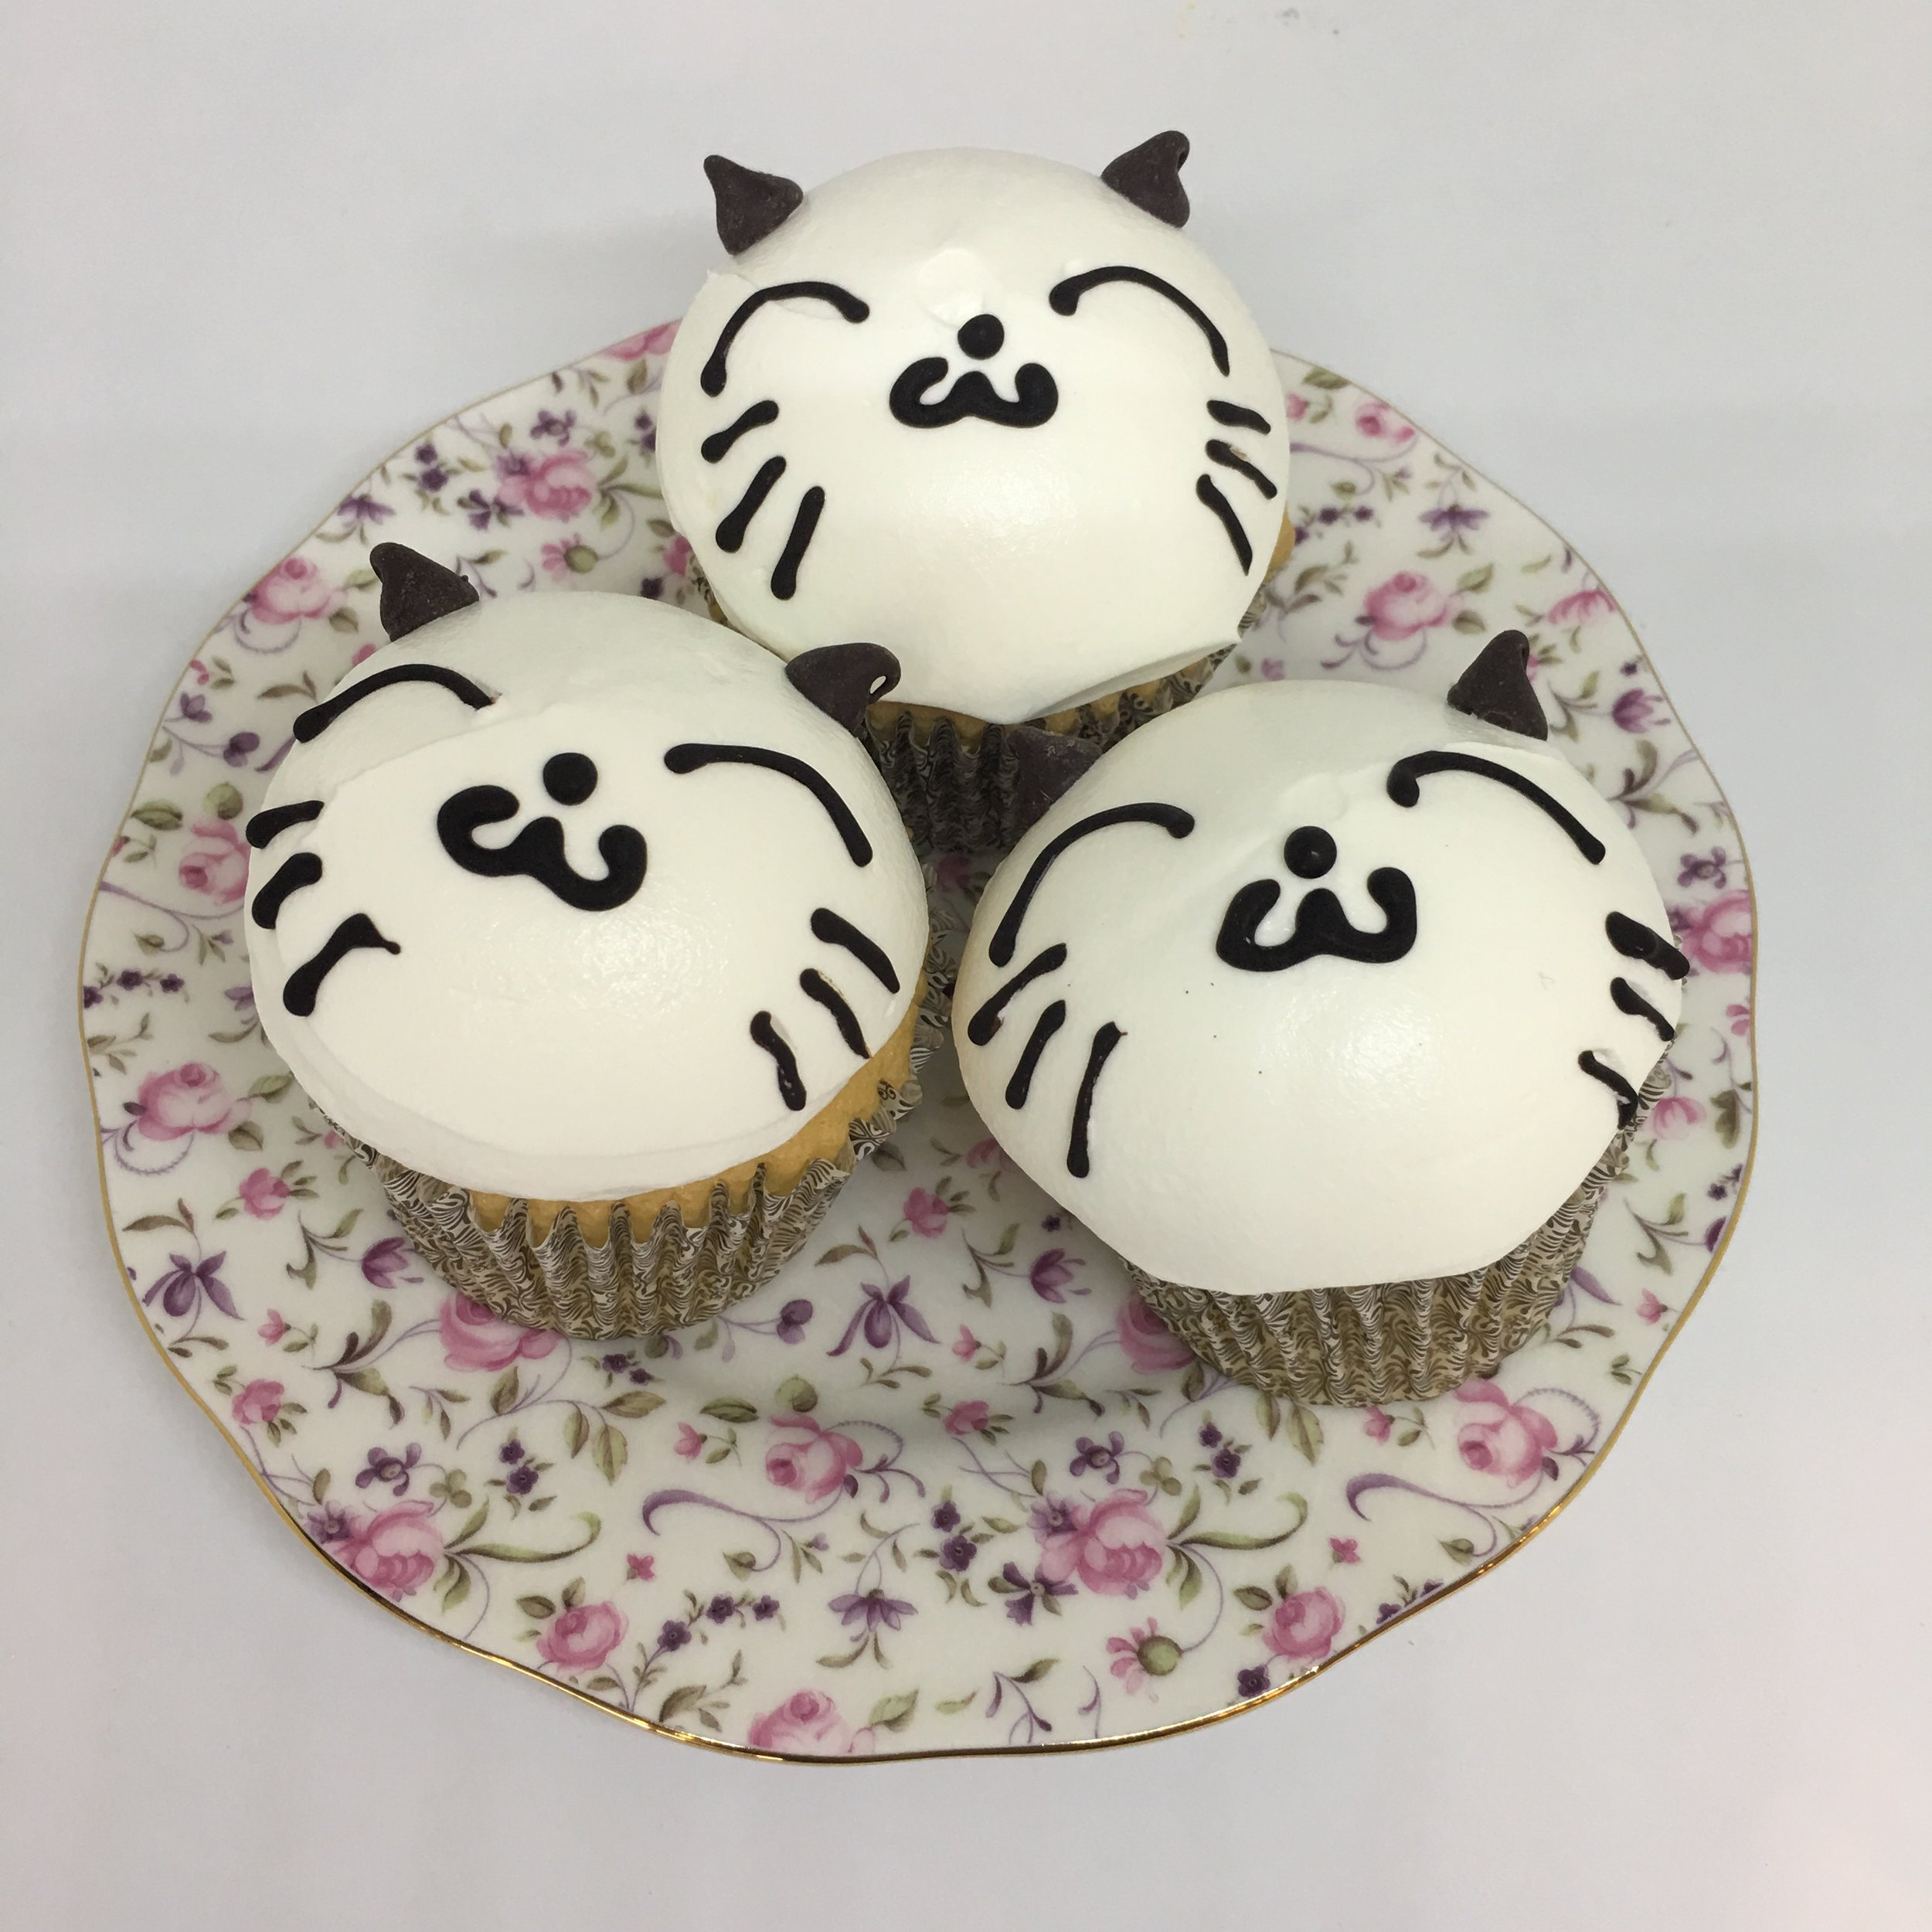 KITTEN CUPCAKE with heavy cream topping (available at Kam Shopping Center location only)